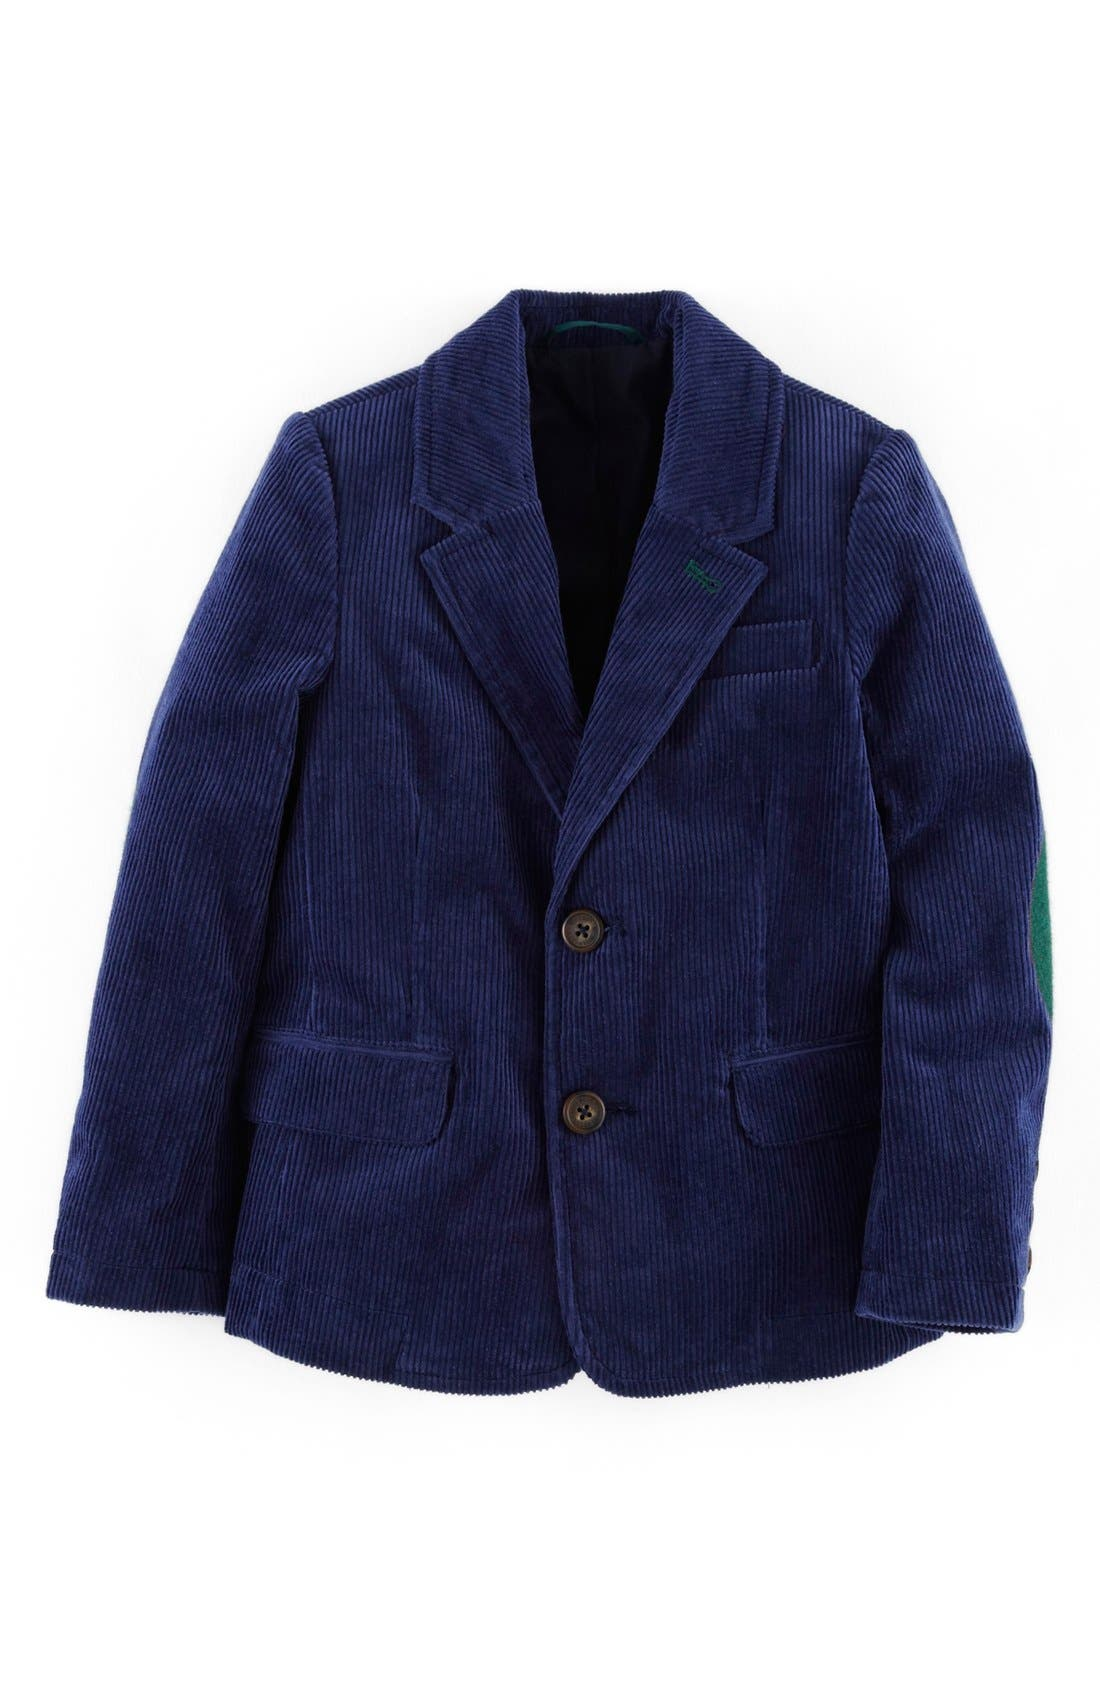 Alternate Image 1 Selected - Mini Boden Corduroy Blazer (Little Boys & Big Boys)